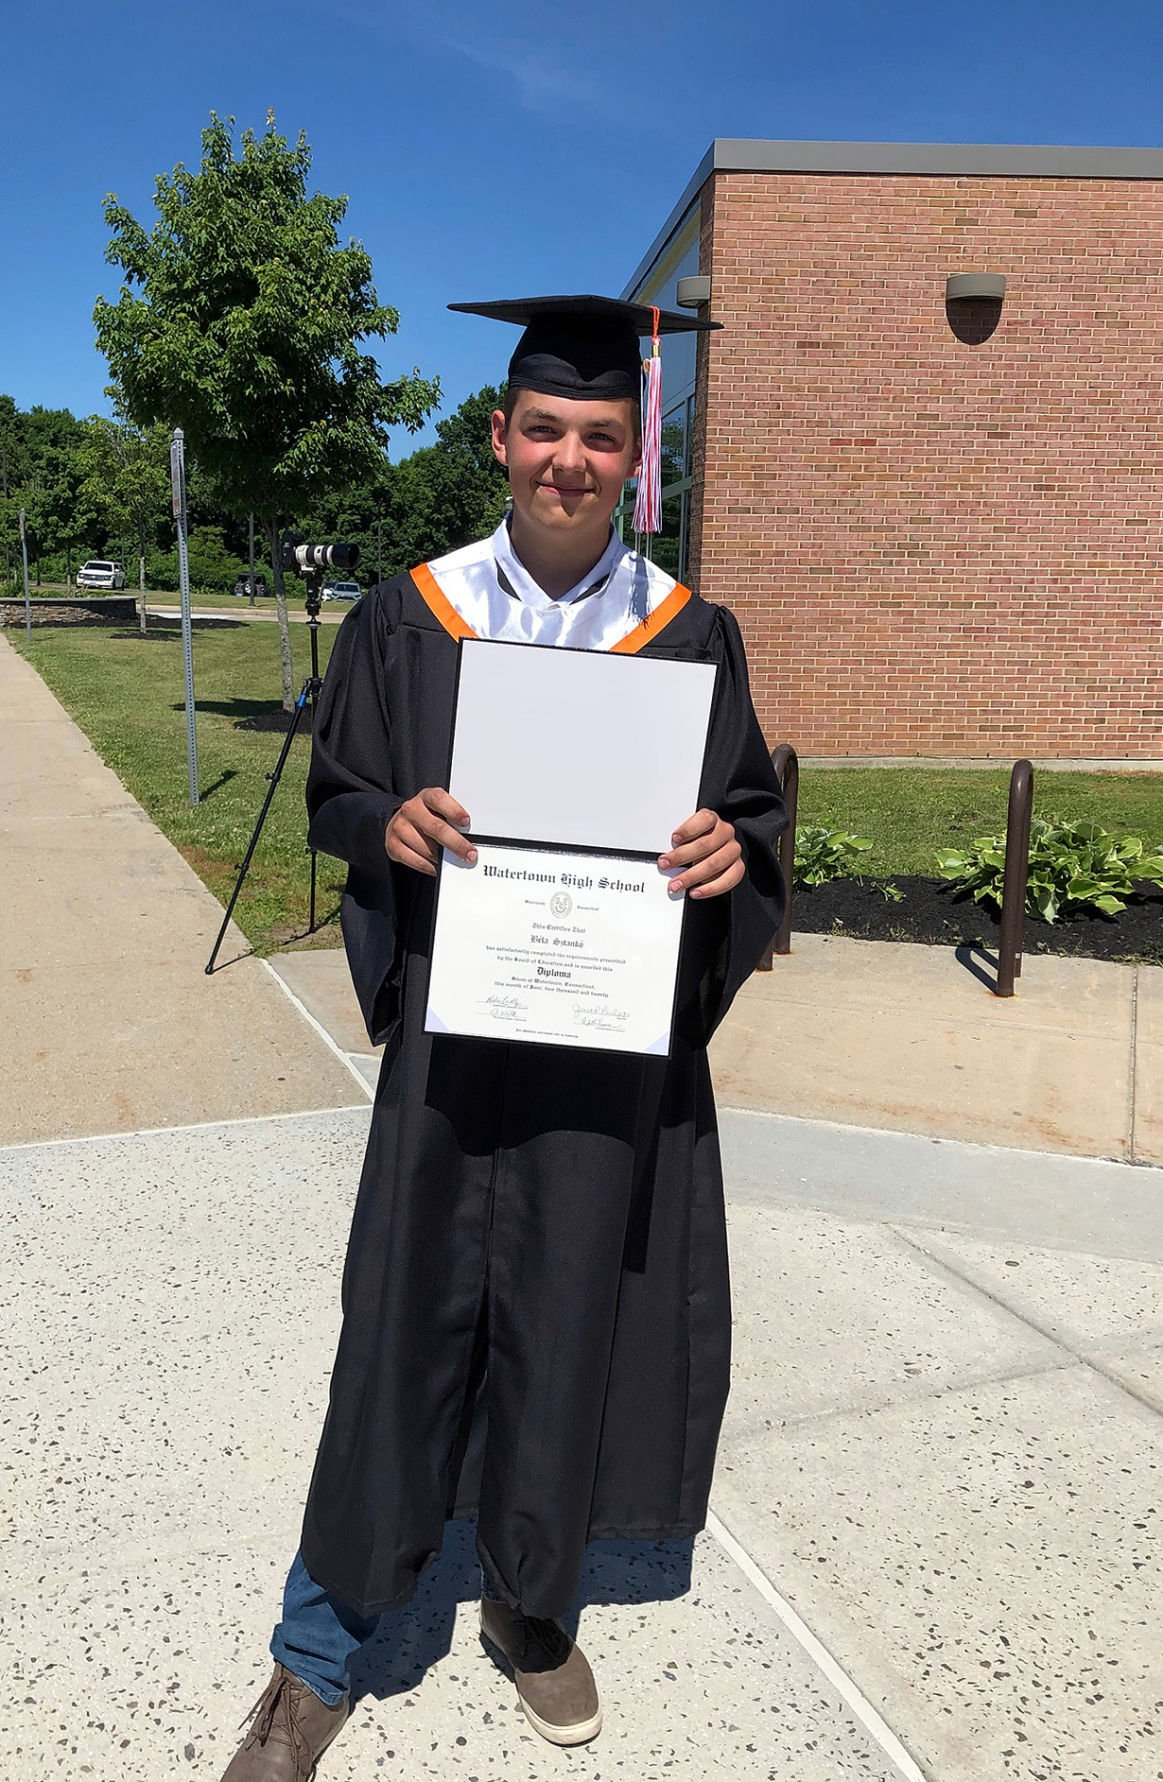 For Watertown High School: Graduates Honored Under Clear Blue Skies at Unconventional Ceremony